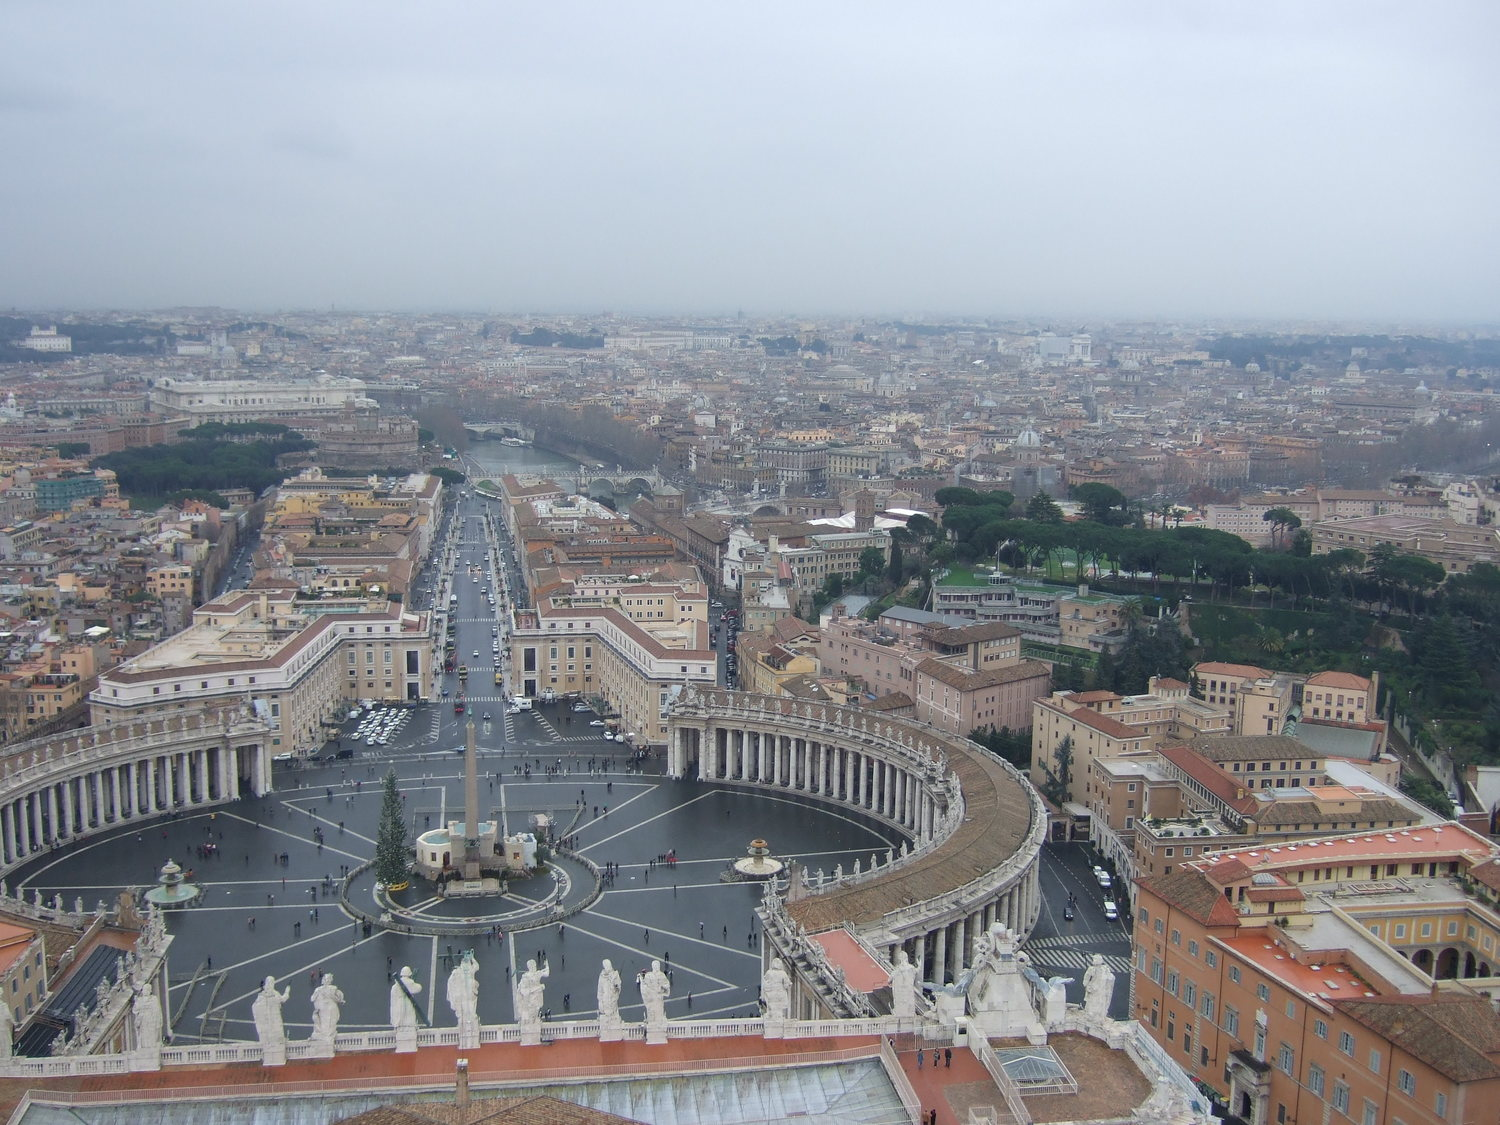 The panoramic view of Rome from the Dome.